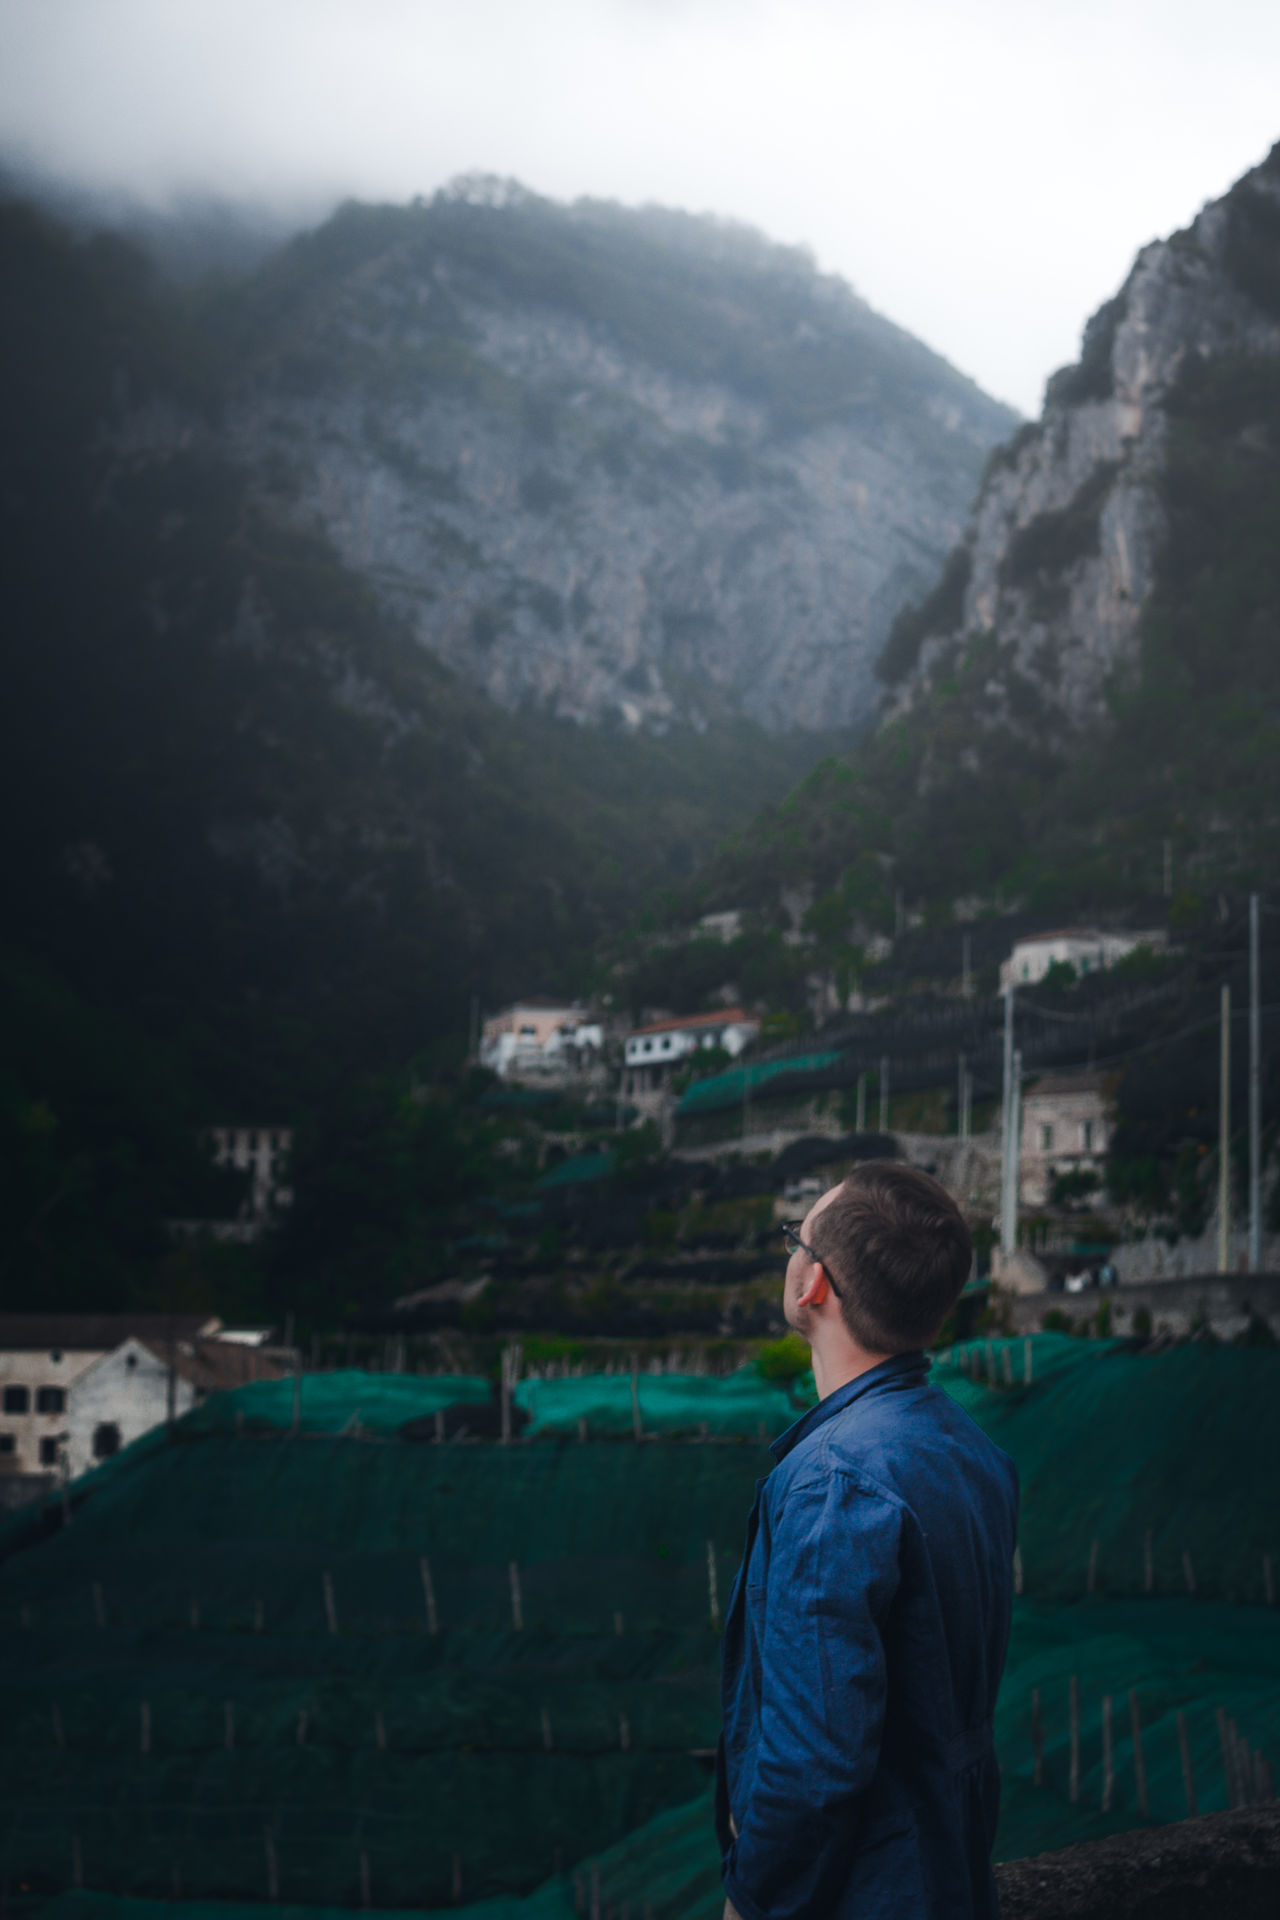 Fog Adult One Person Rear View Mountain Standing Beauty In Nature Young Adult Scenics Nature Day Landscape Beautiful Pretty Italy EyeEm Gallery Amalfi  Eye4photography  EyeEm Best Shots City Sky Europe Vacations Outdoors EyeEm